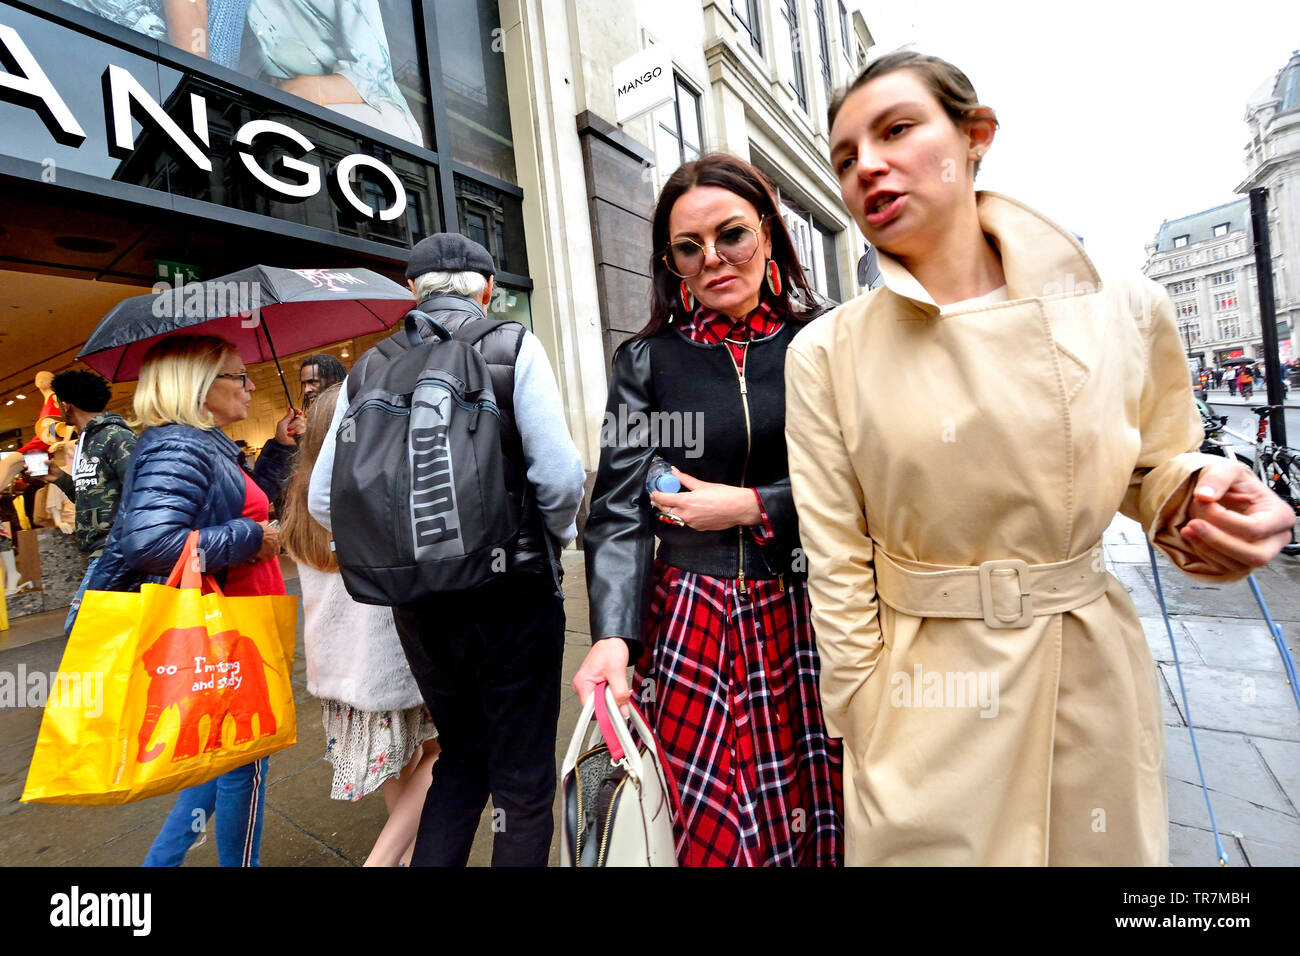 London, England, UK. People shopping in Oxford Street on a rainy day - Stock Image